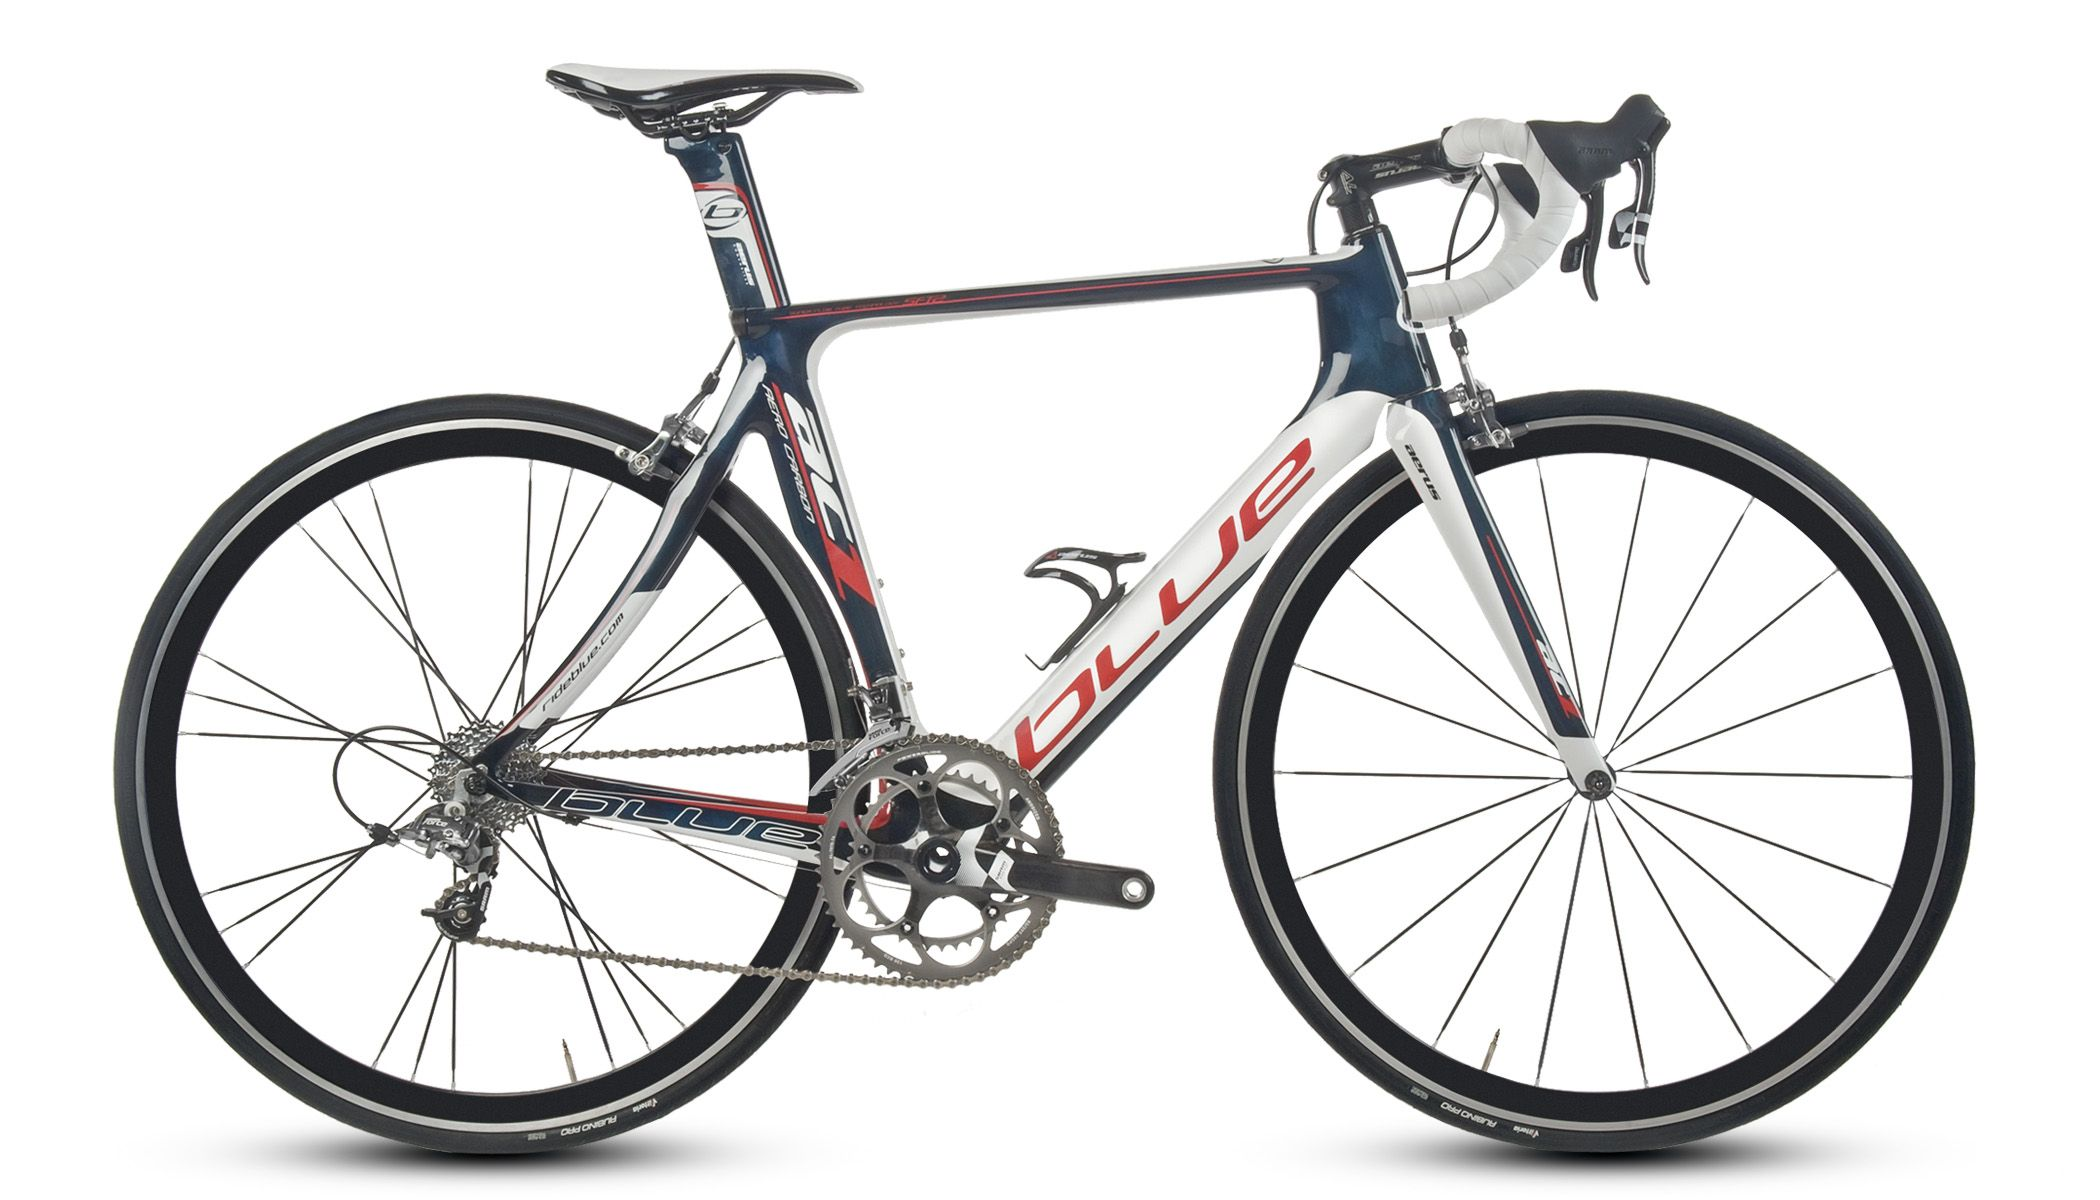 2014 Blue Aero Road Bike.  Builds/pricing information not yet published.  Sweet looking bike though.